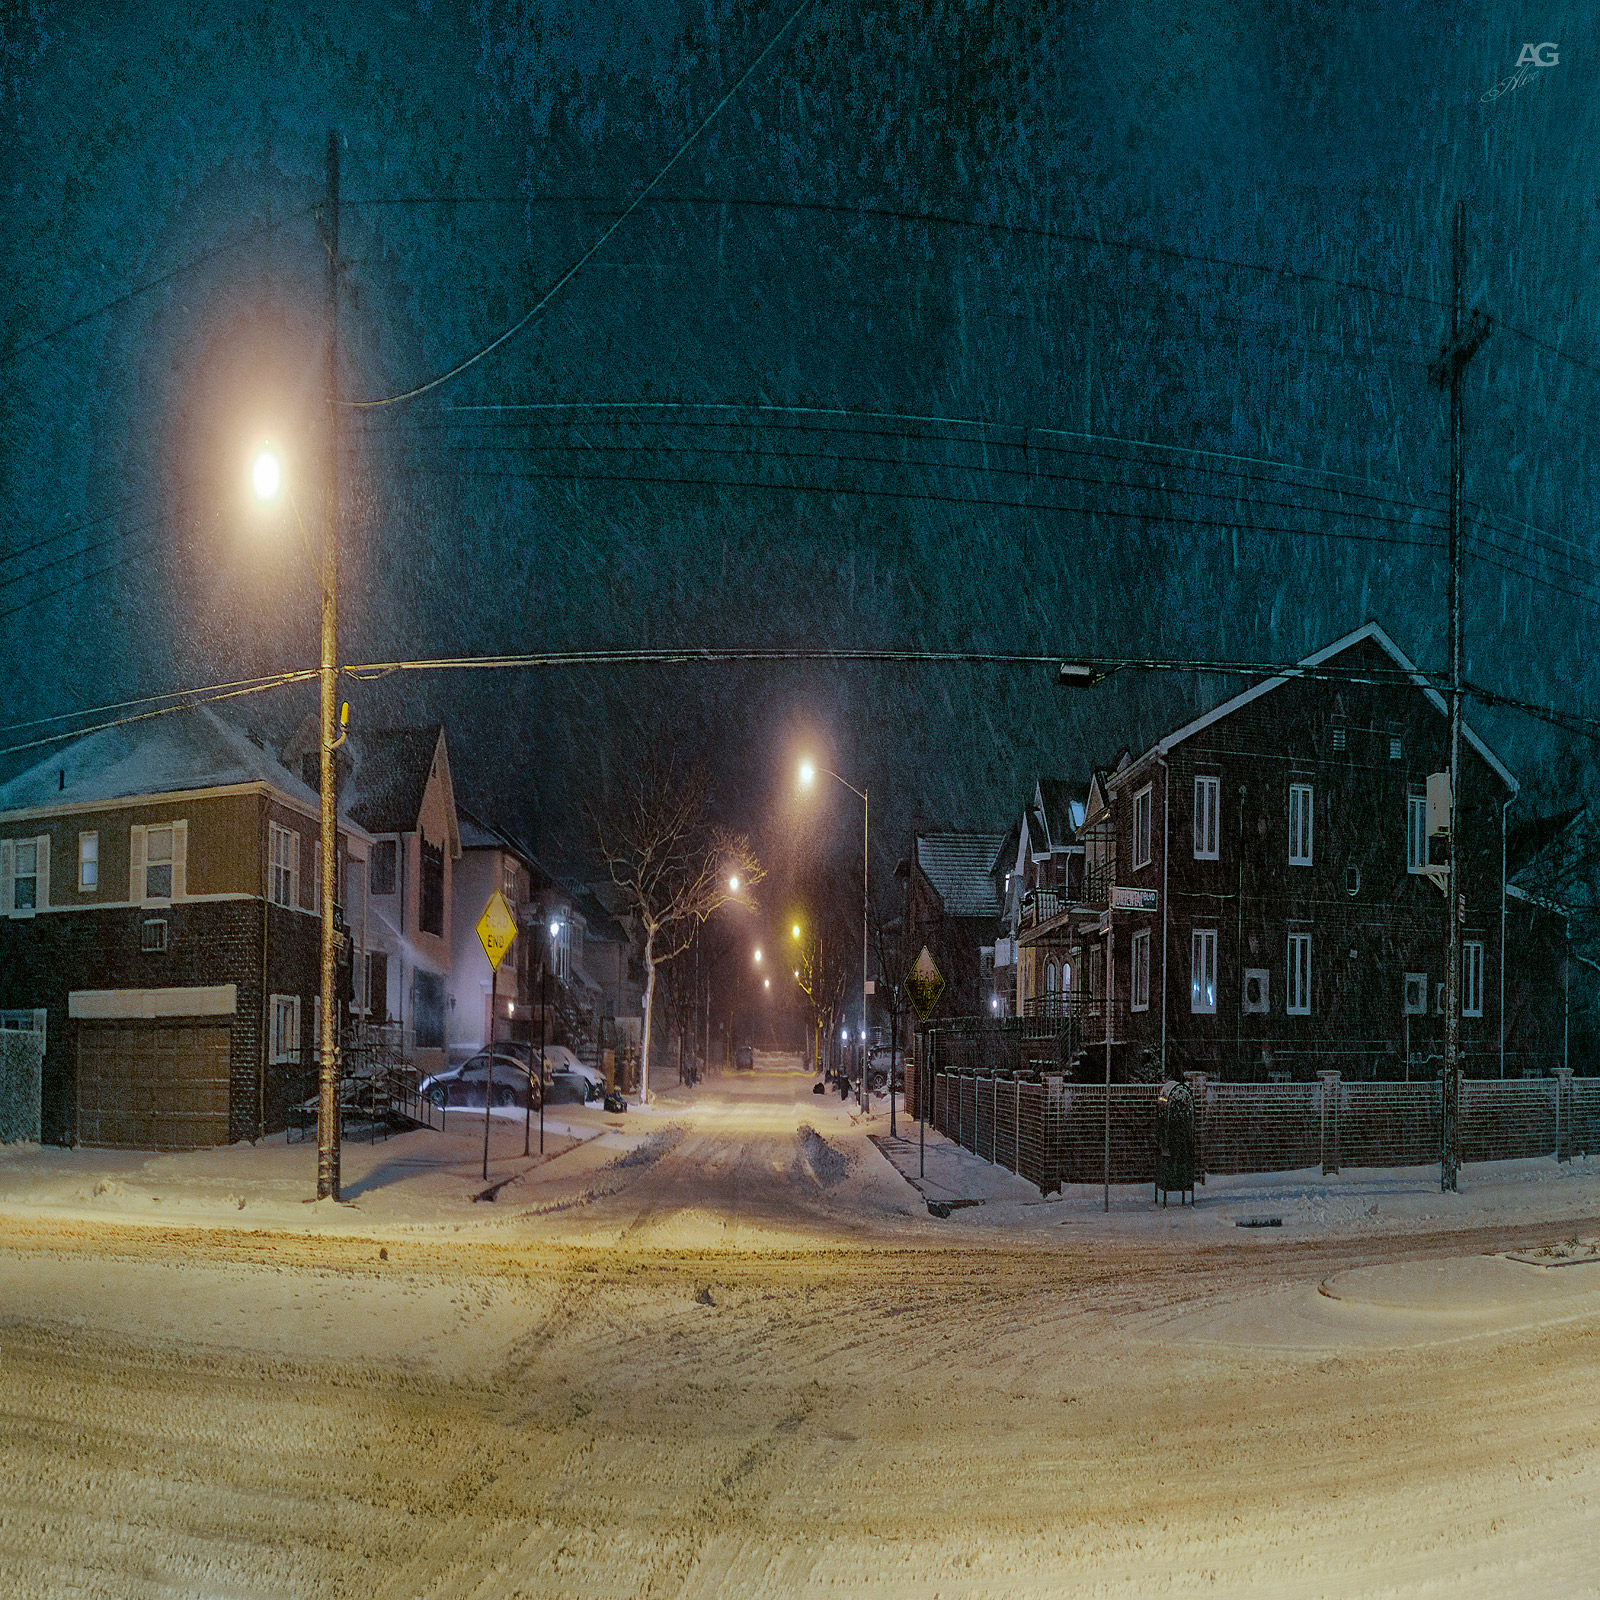 Brooklyn_WinterTale_EmptyStreetByTheDeadEnd_squished_1600